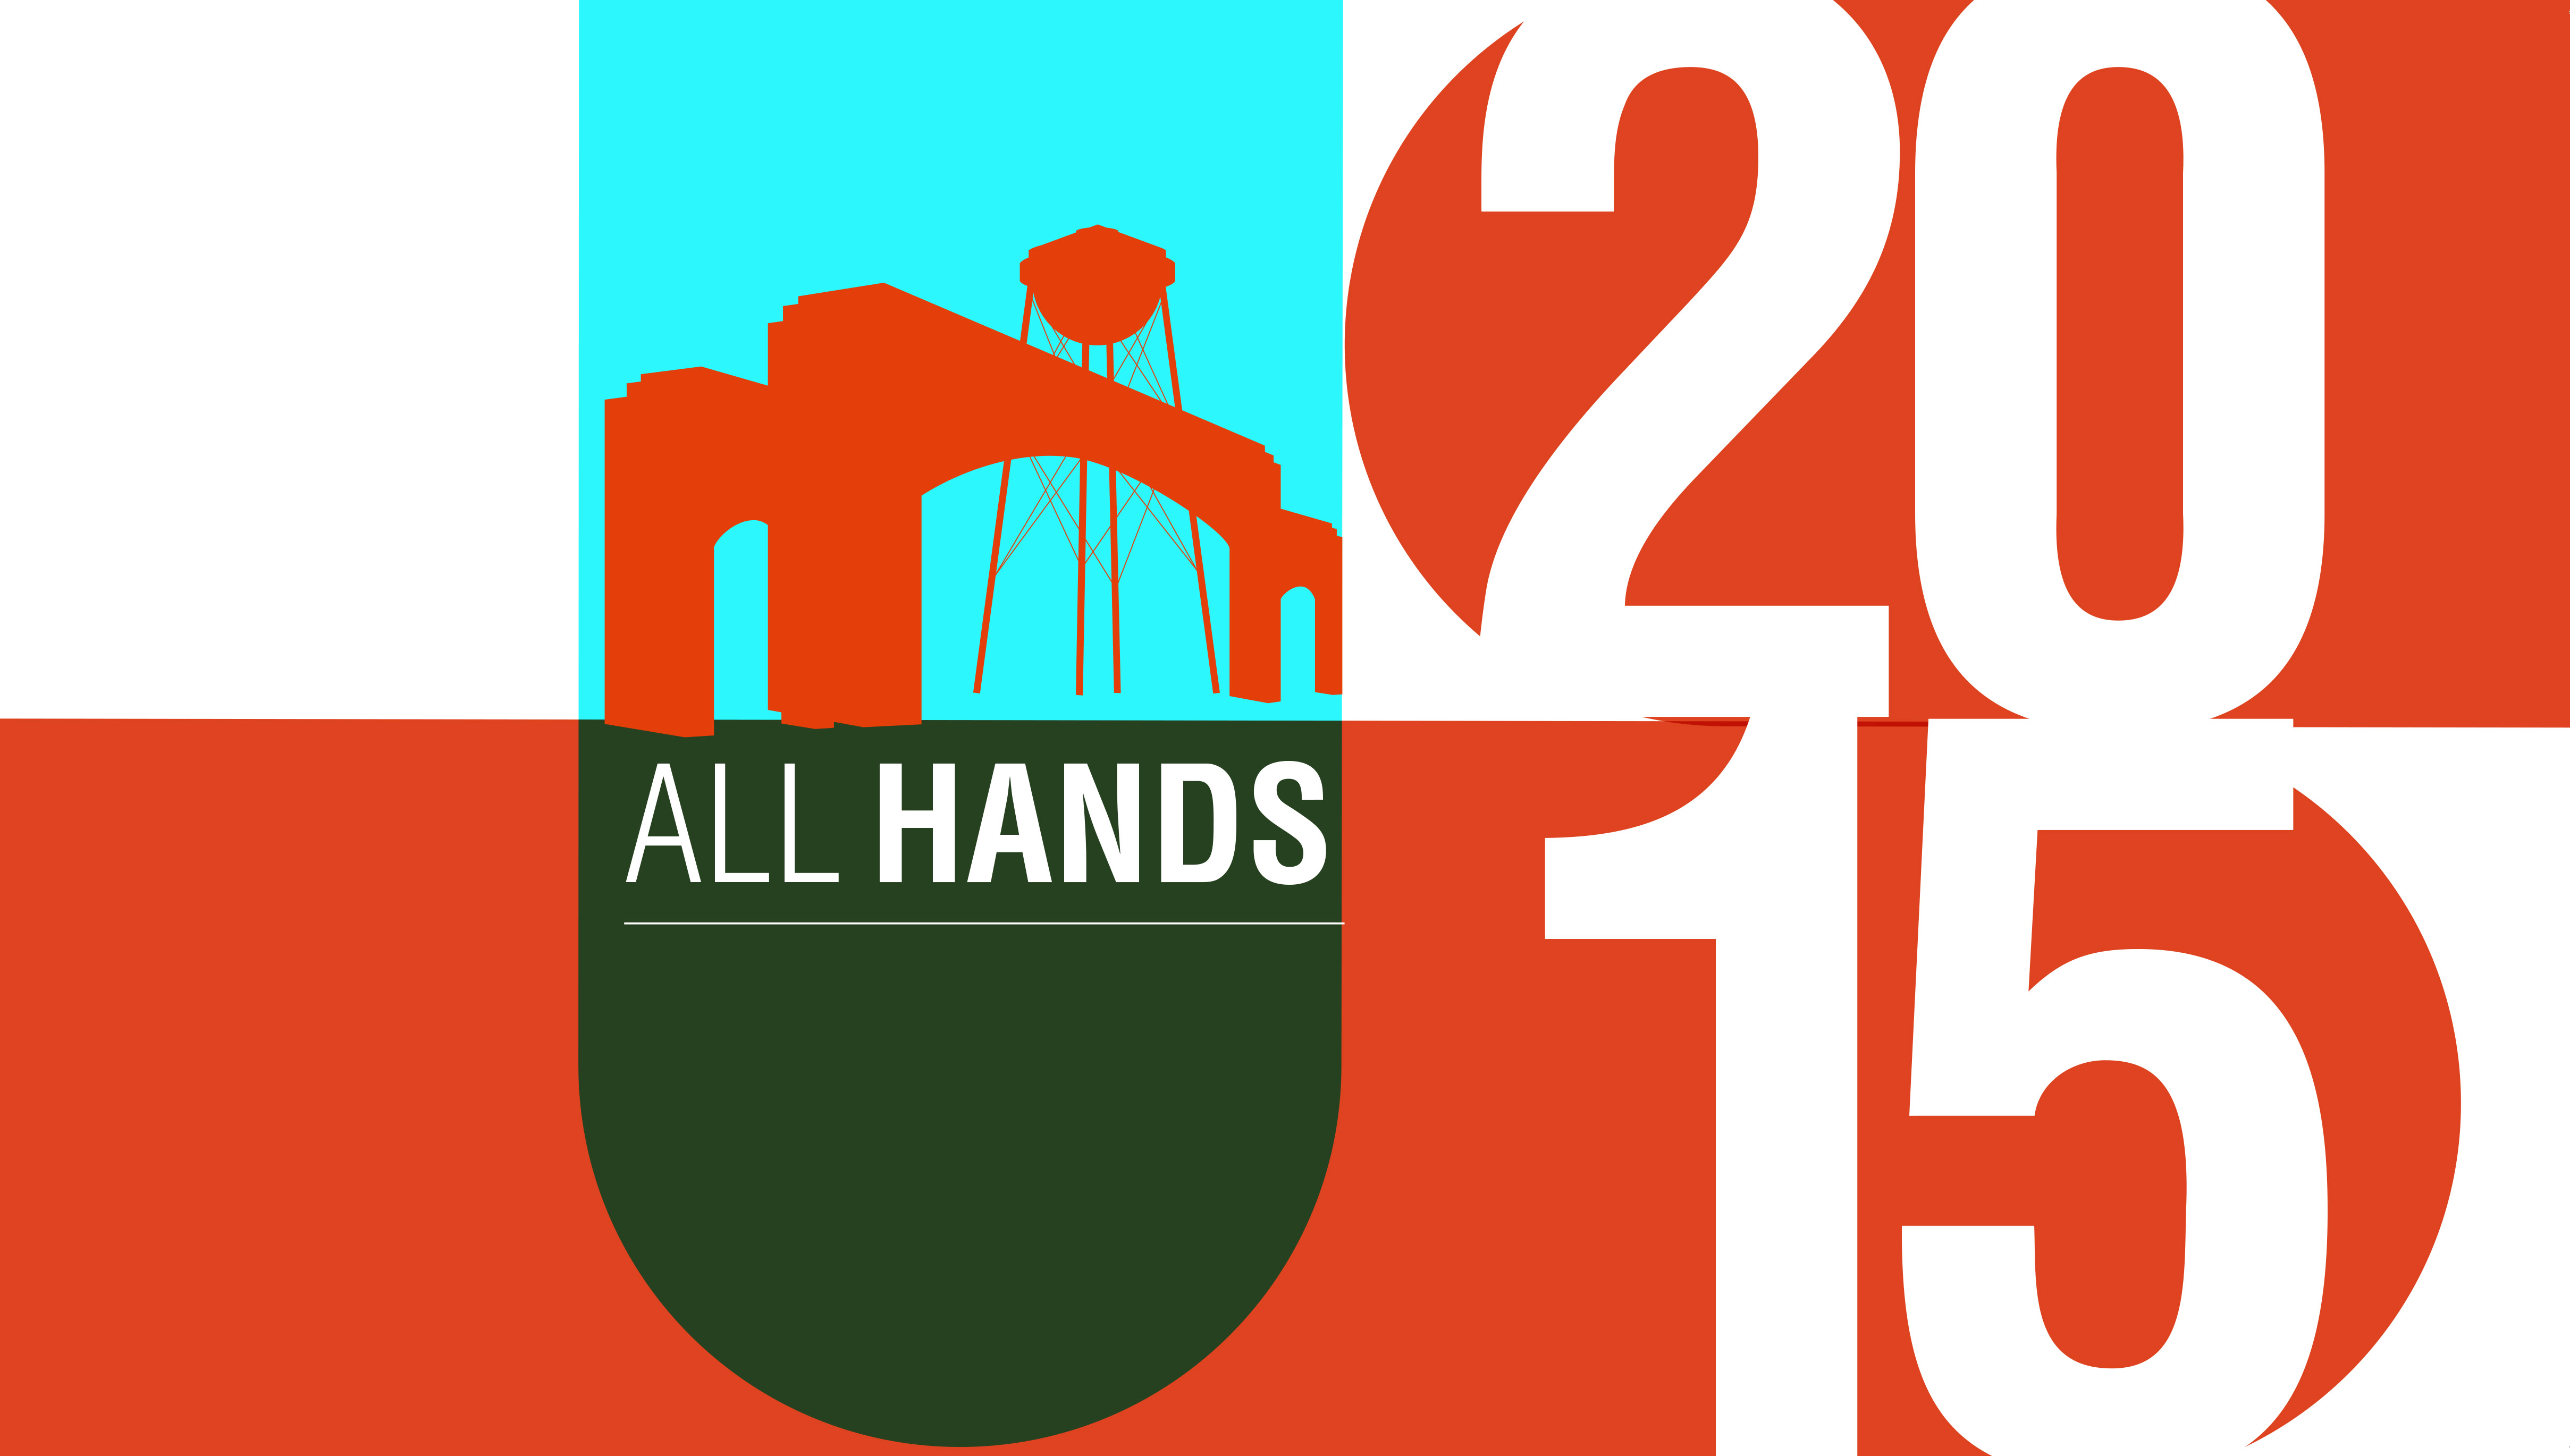 All_Hands_2015 14